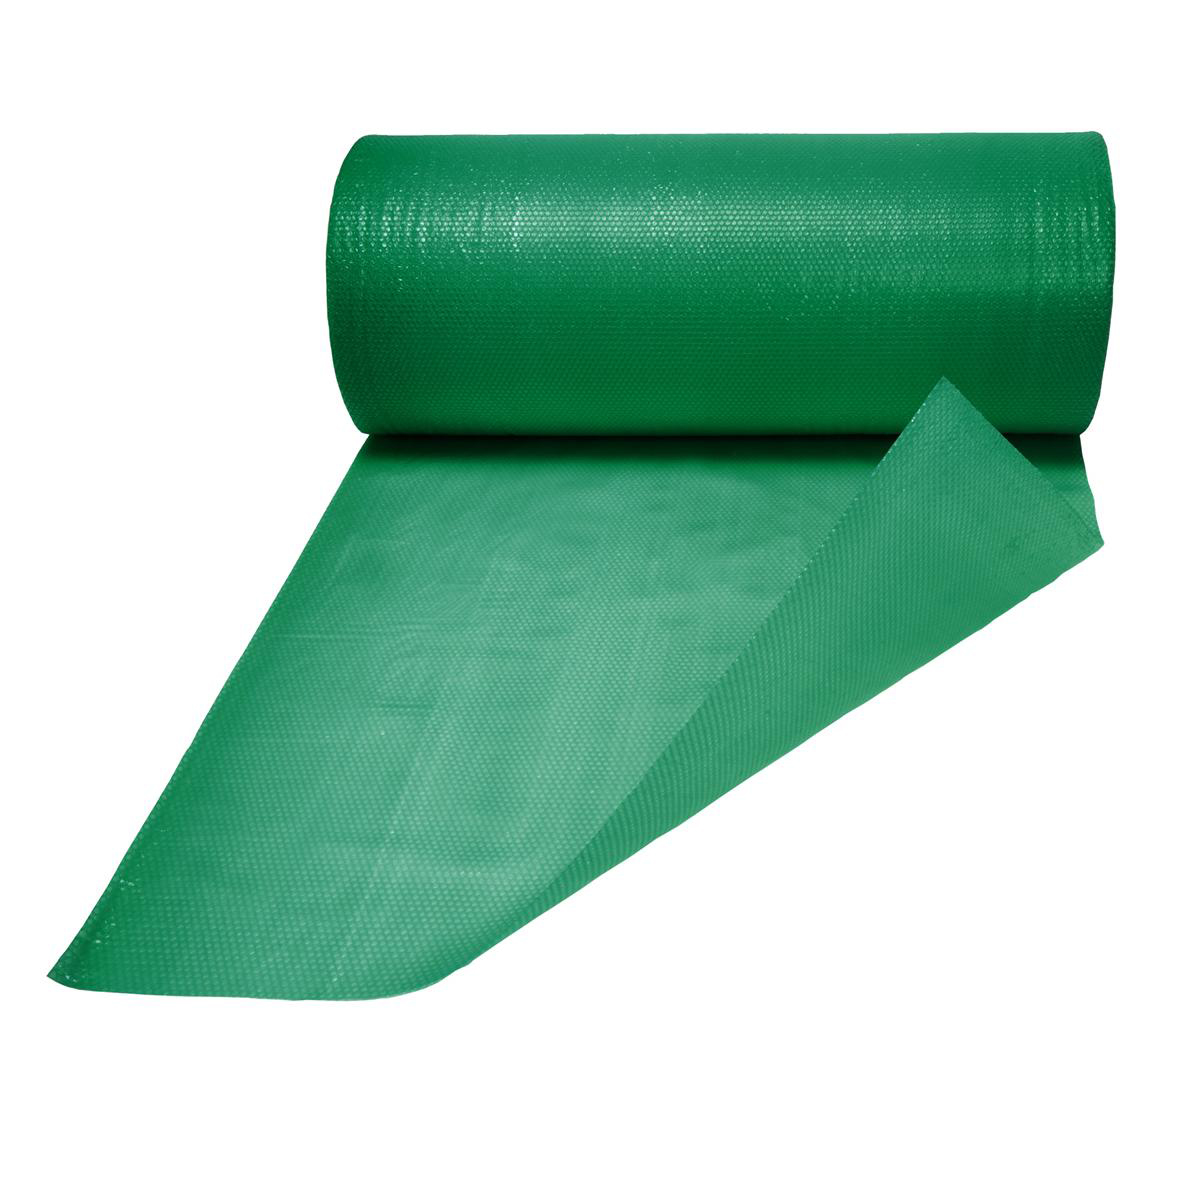 Plastic slip sheet Jiffy Green Bubble Wrap Recycled Diam. 10mmxH5mm 750mmx75m Green Ref BROE54008